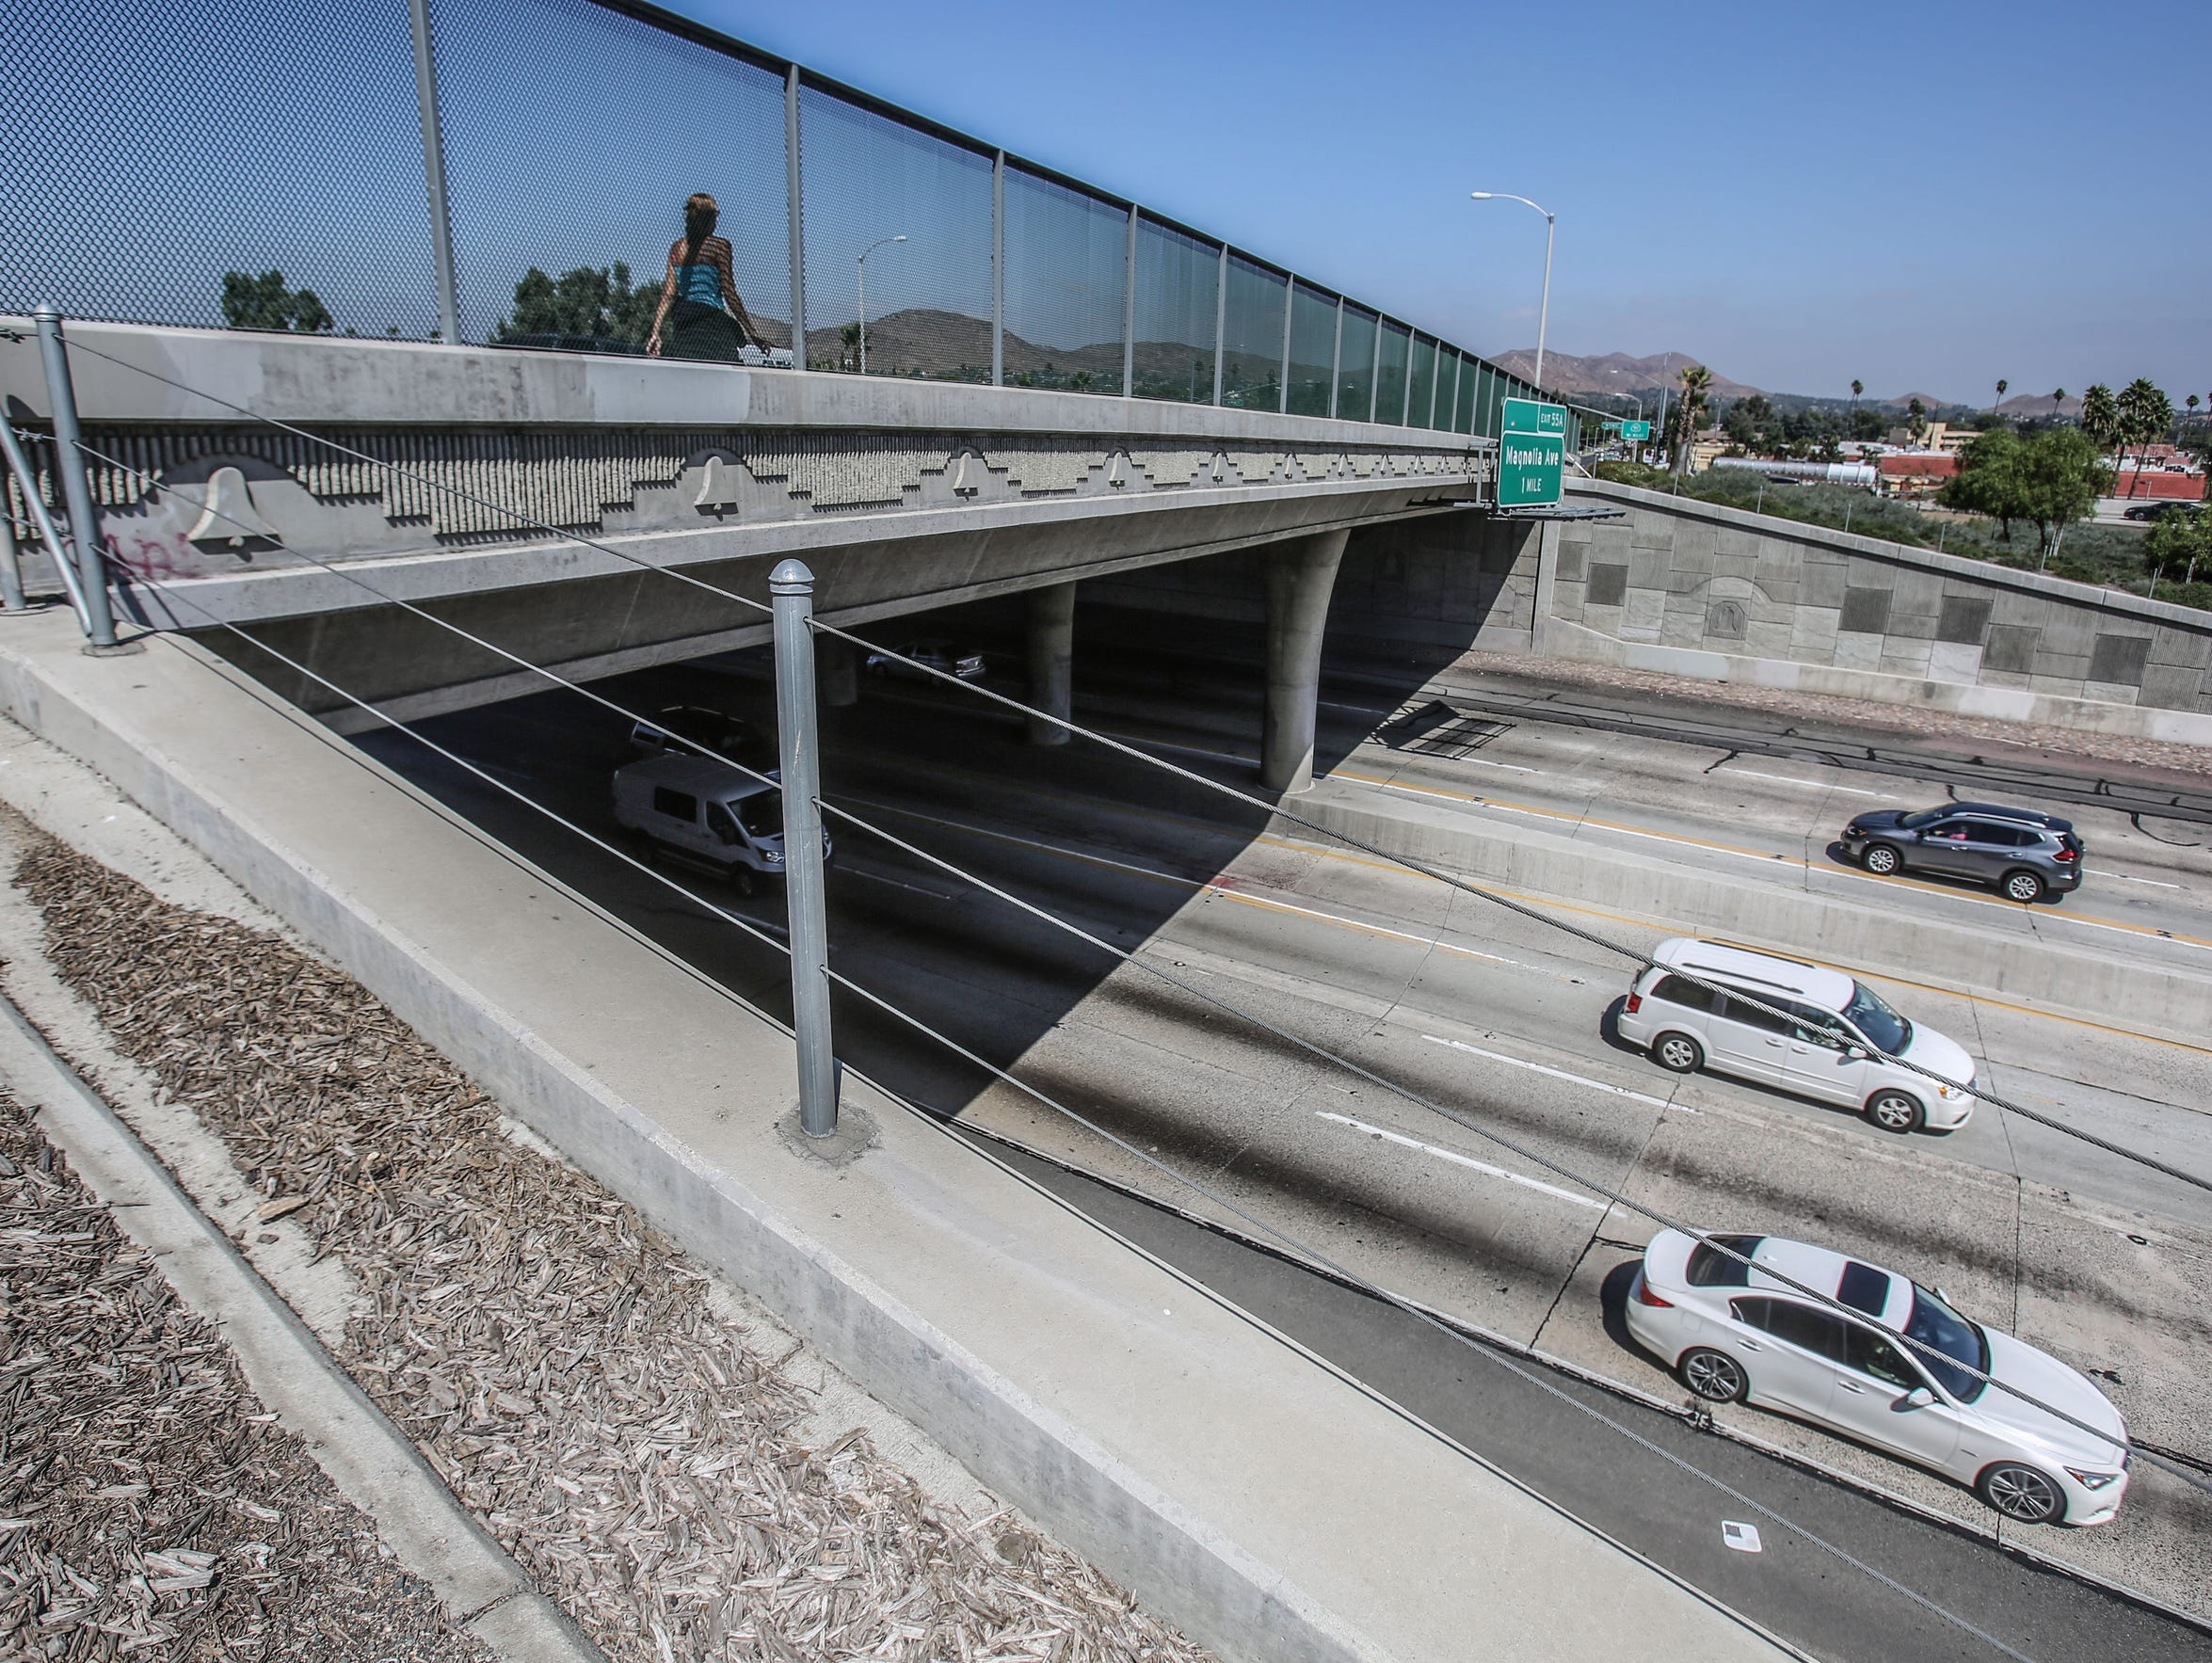 The La Sierra Avenue overpass, where Dane Norem was